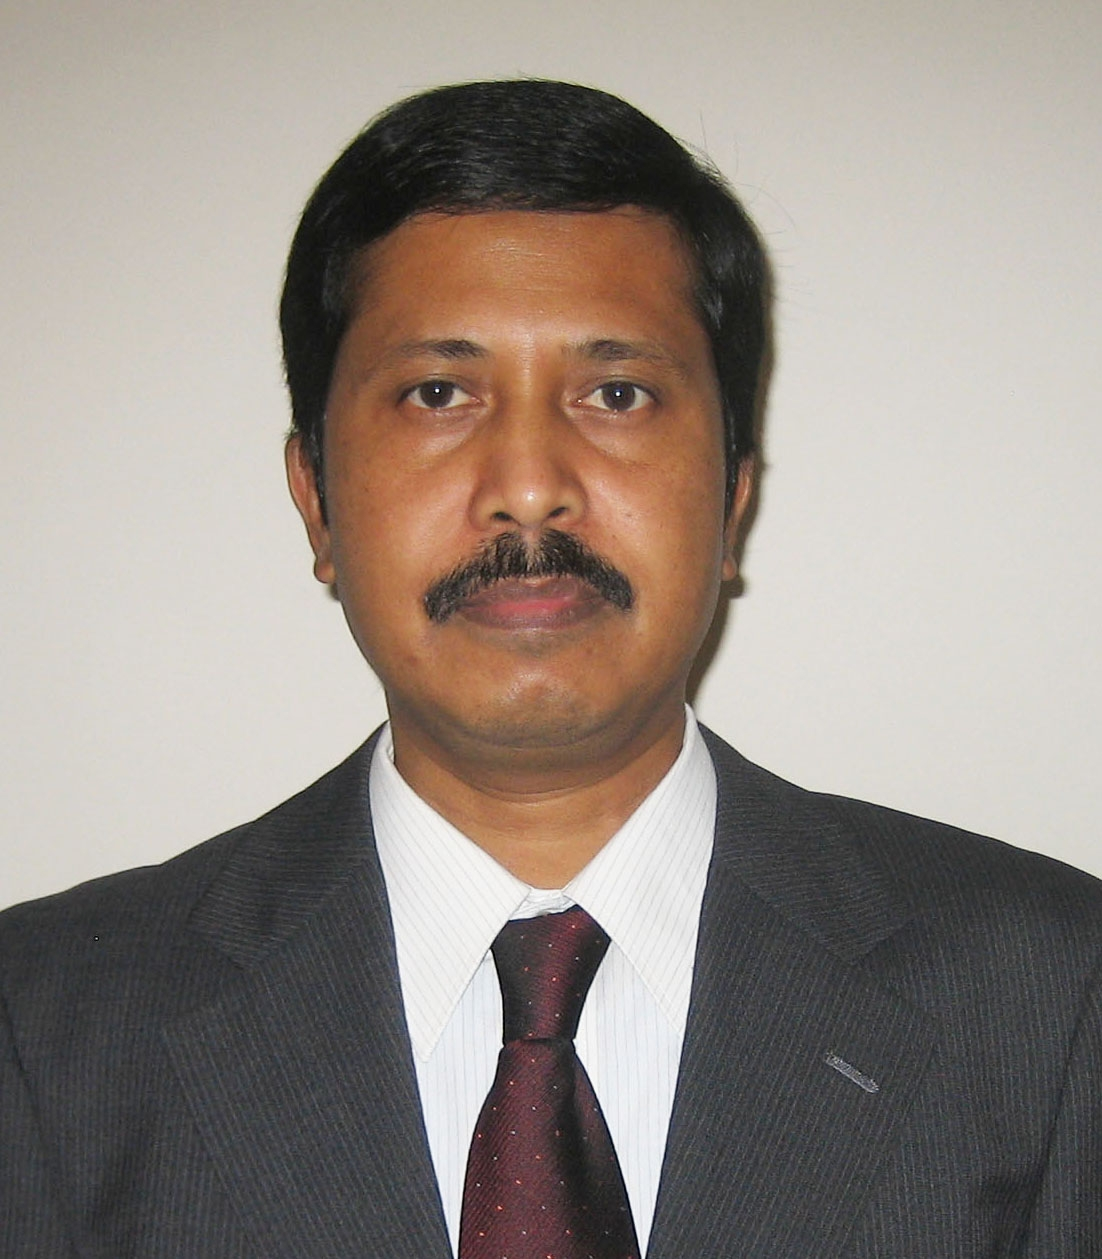 Dr. Md. Ashraful Haque